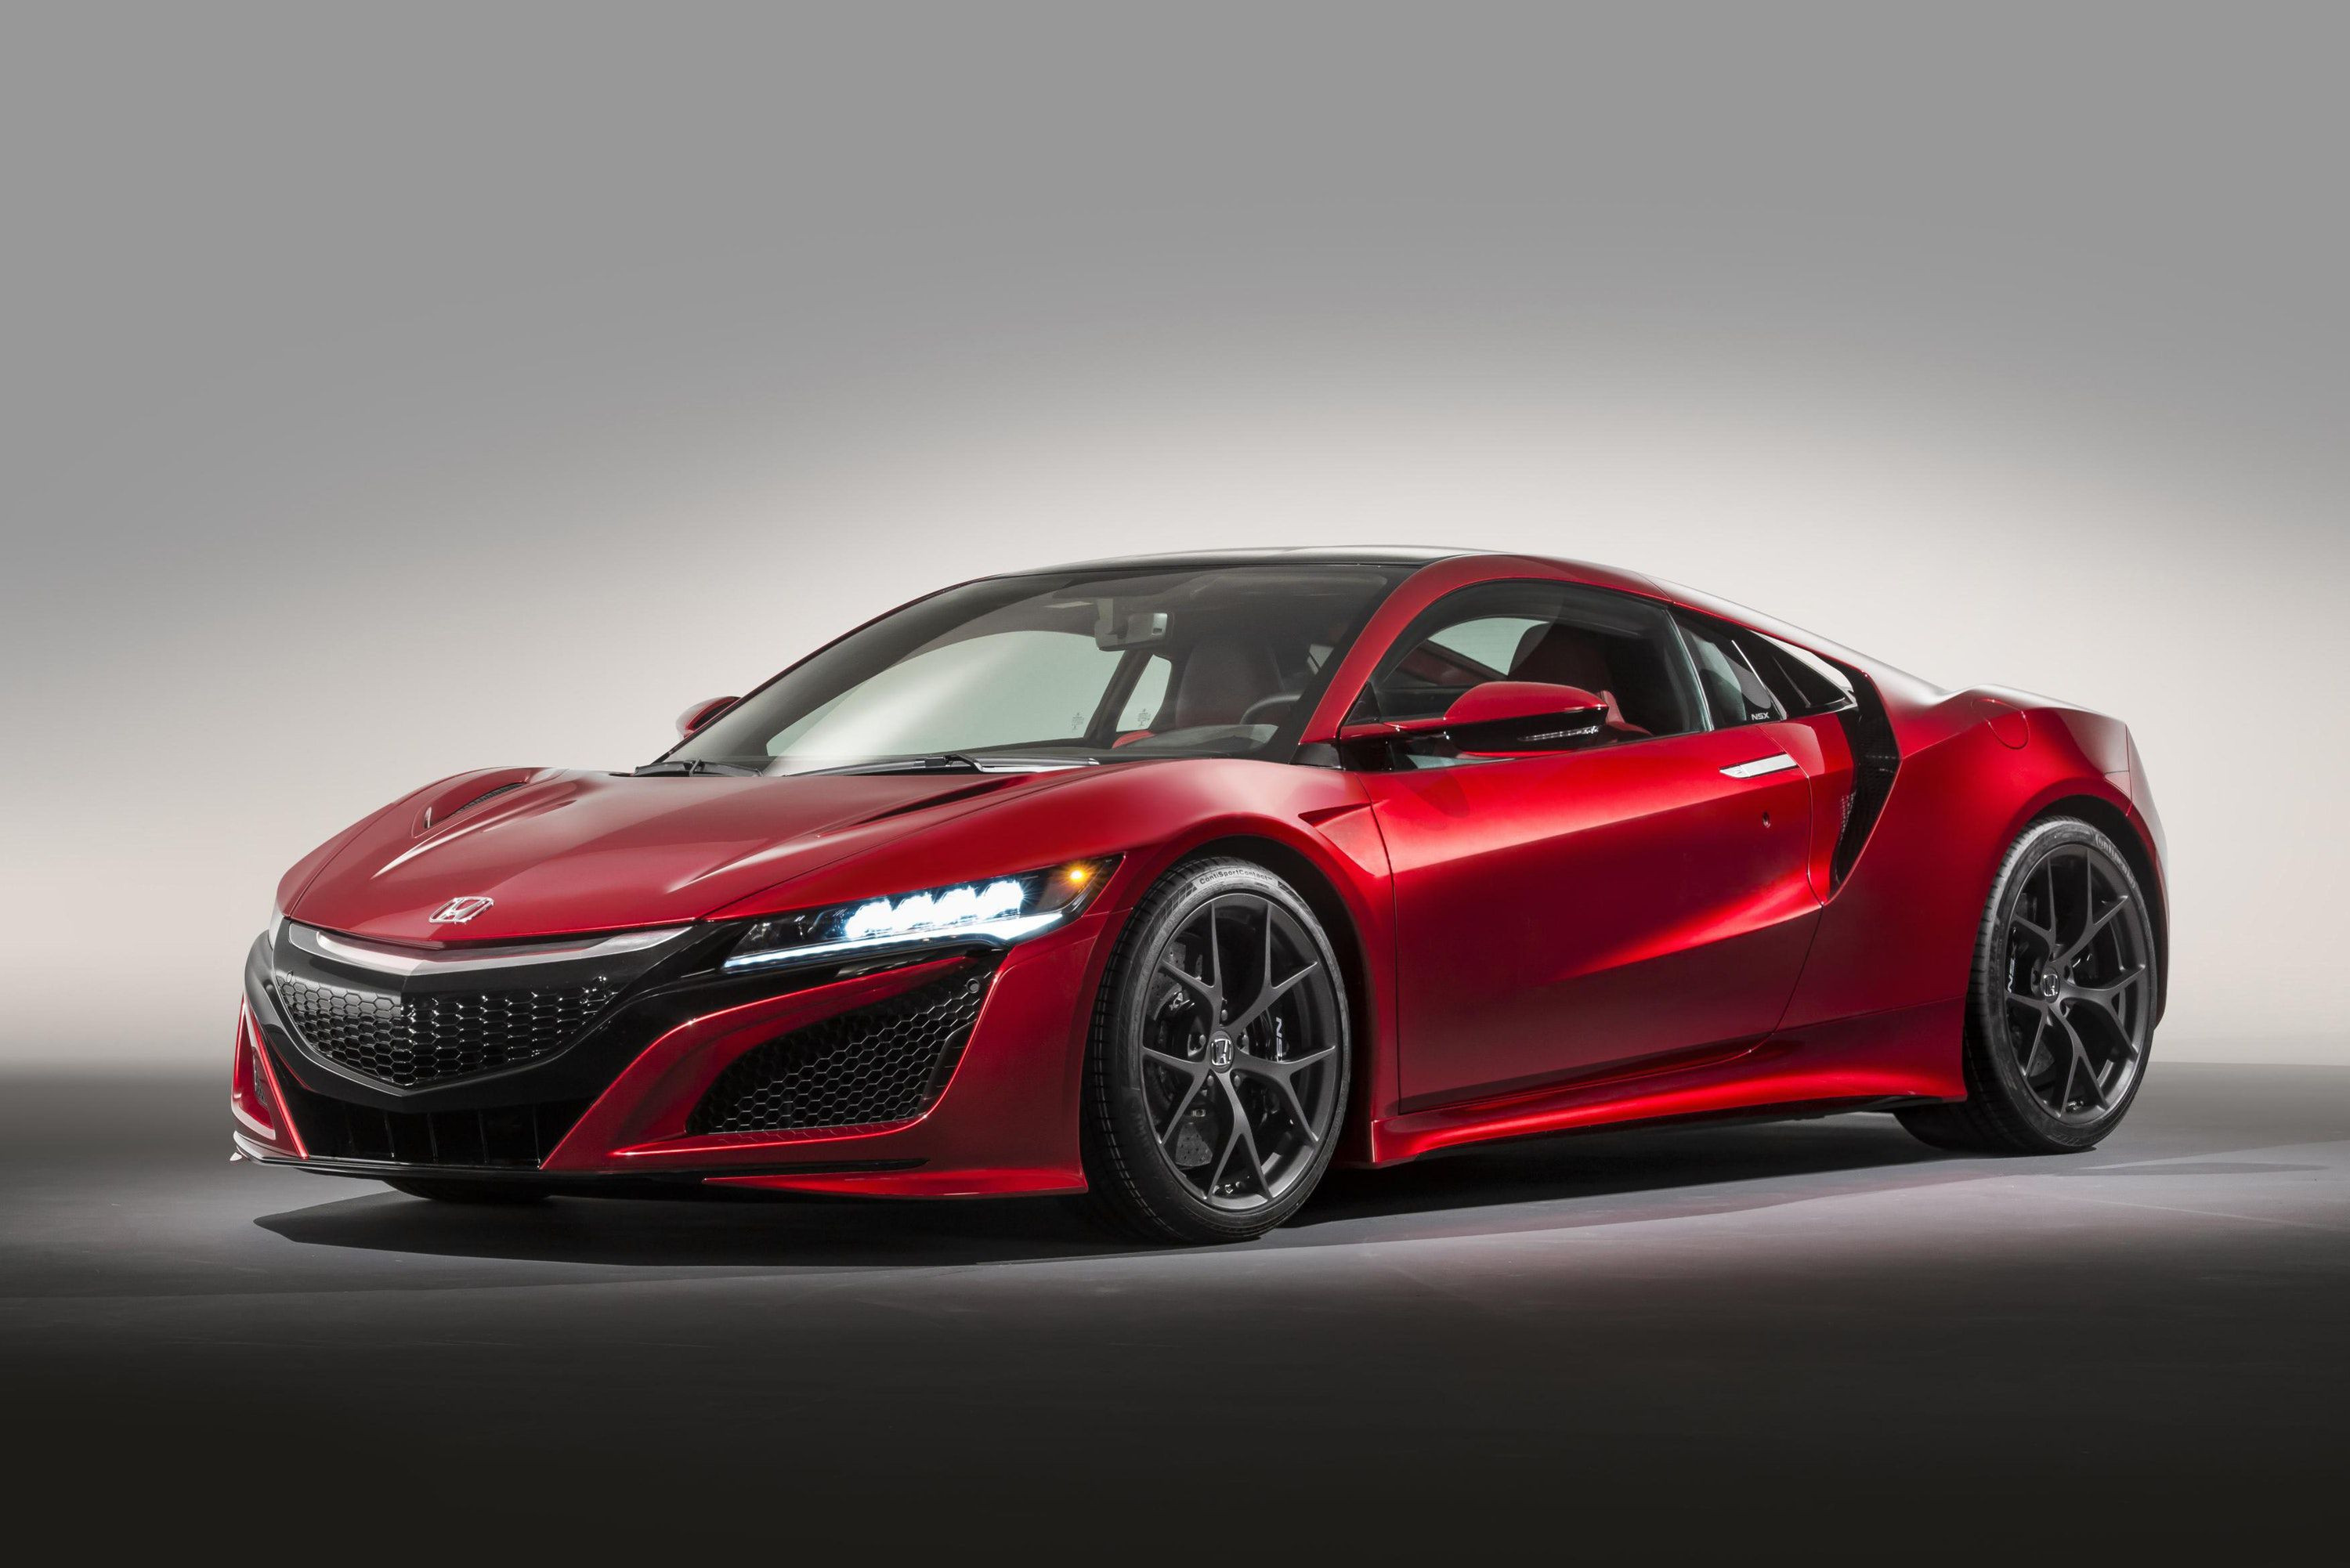 Red Honda NSX